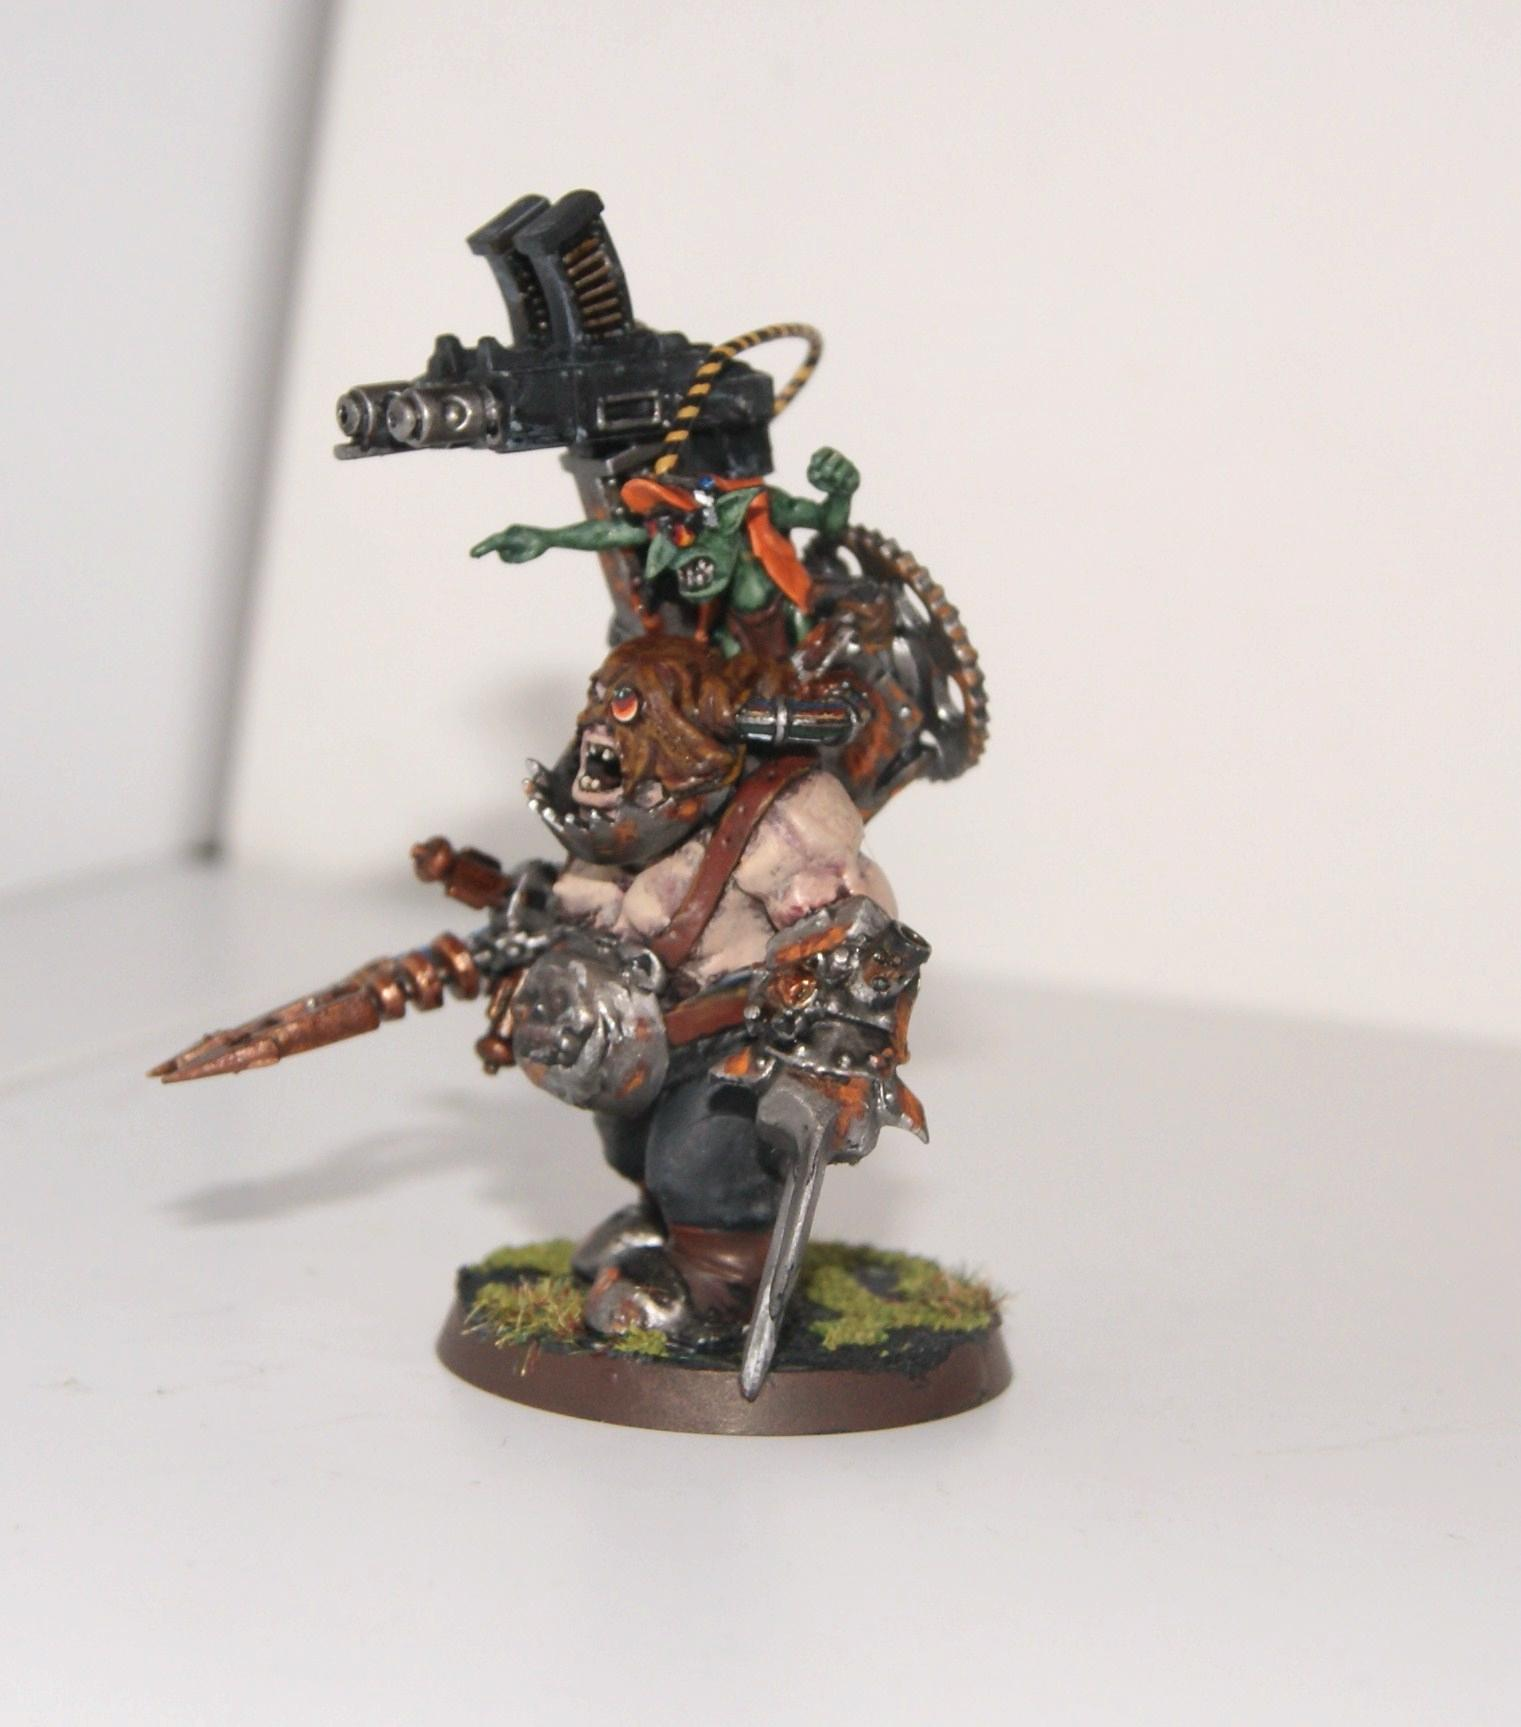 Conversion, Gretchin, Grot Rebellion, Grot Rebels, Grots, Orks, Warhammer 40,000